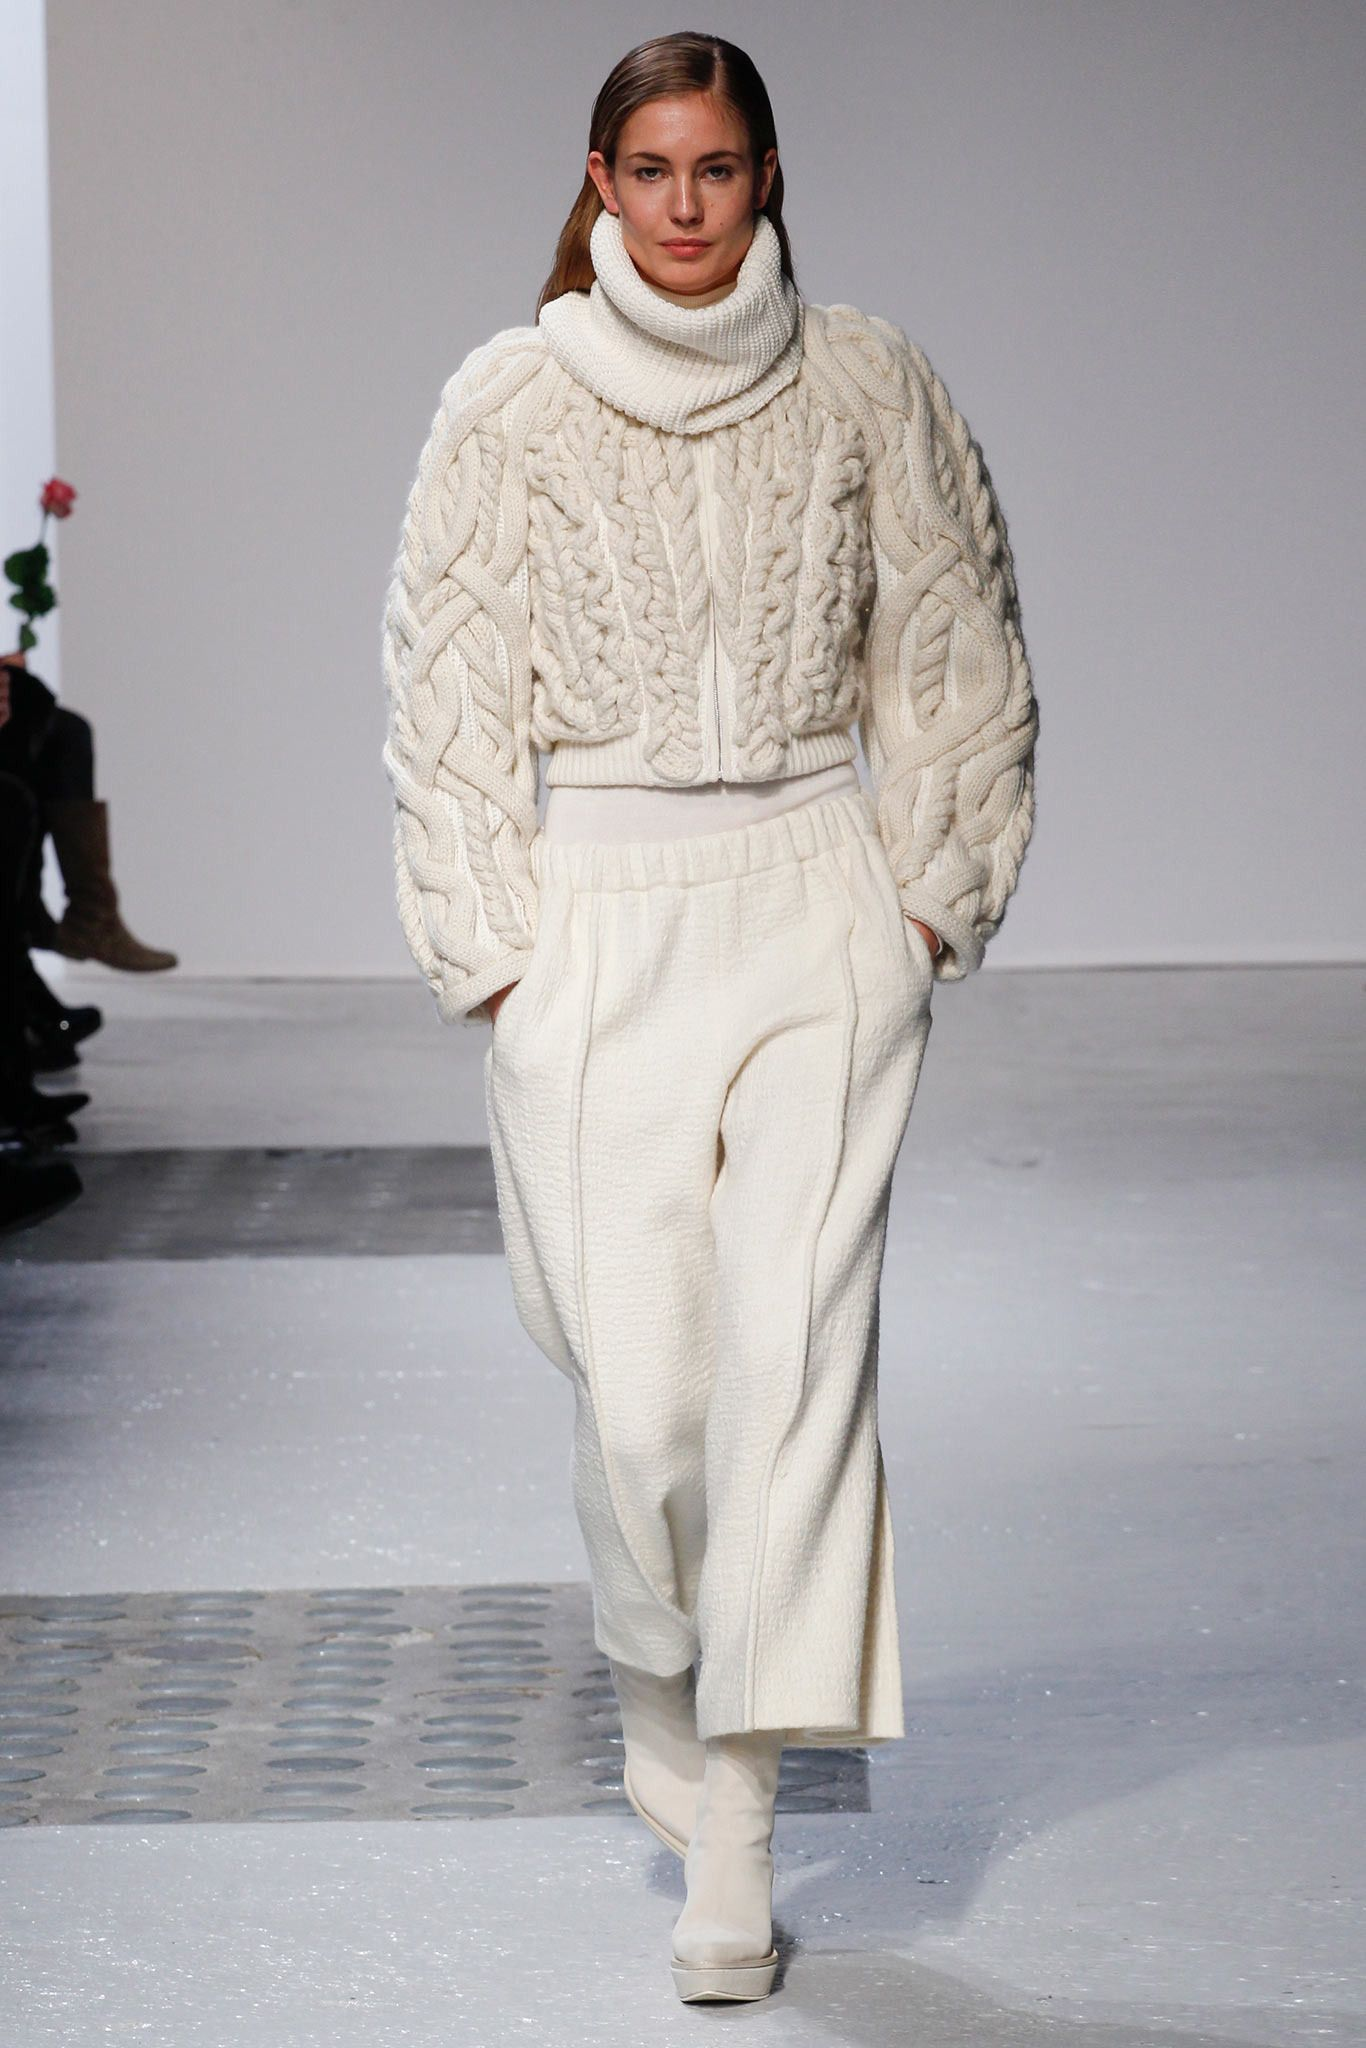 Women's Knitwear For Autumn-Winter 2014-2015 (5) | Strikking ...